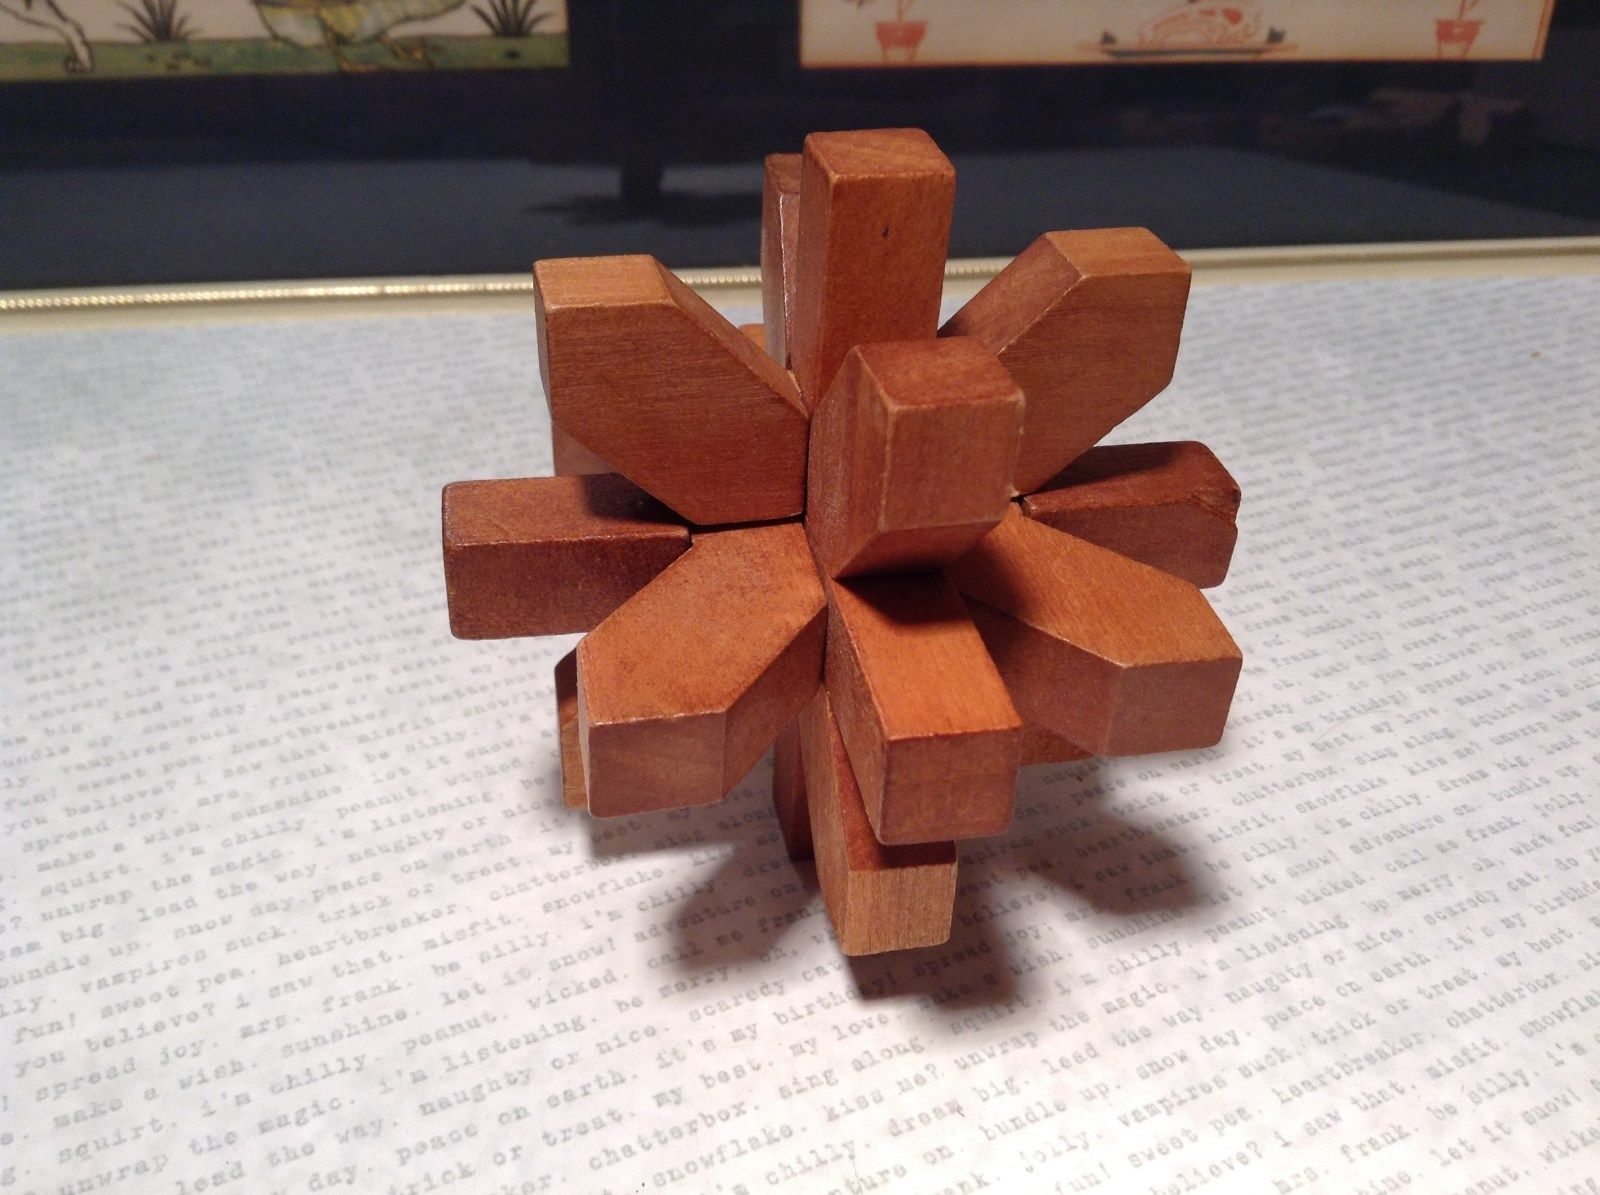 New Mi Toys Geo Central Wooden 3 D Star Sharped Puzzle